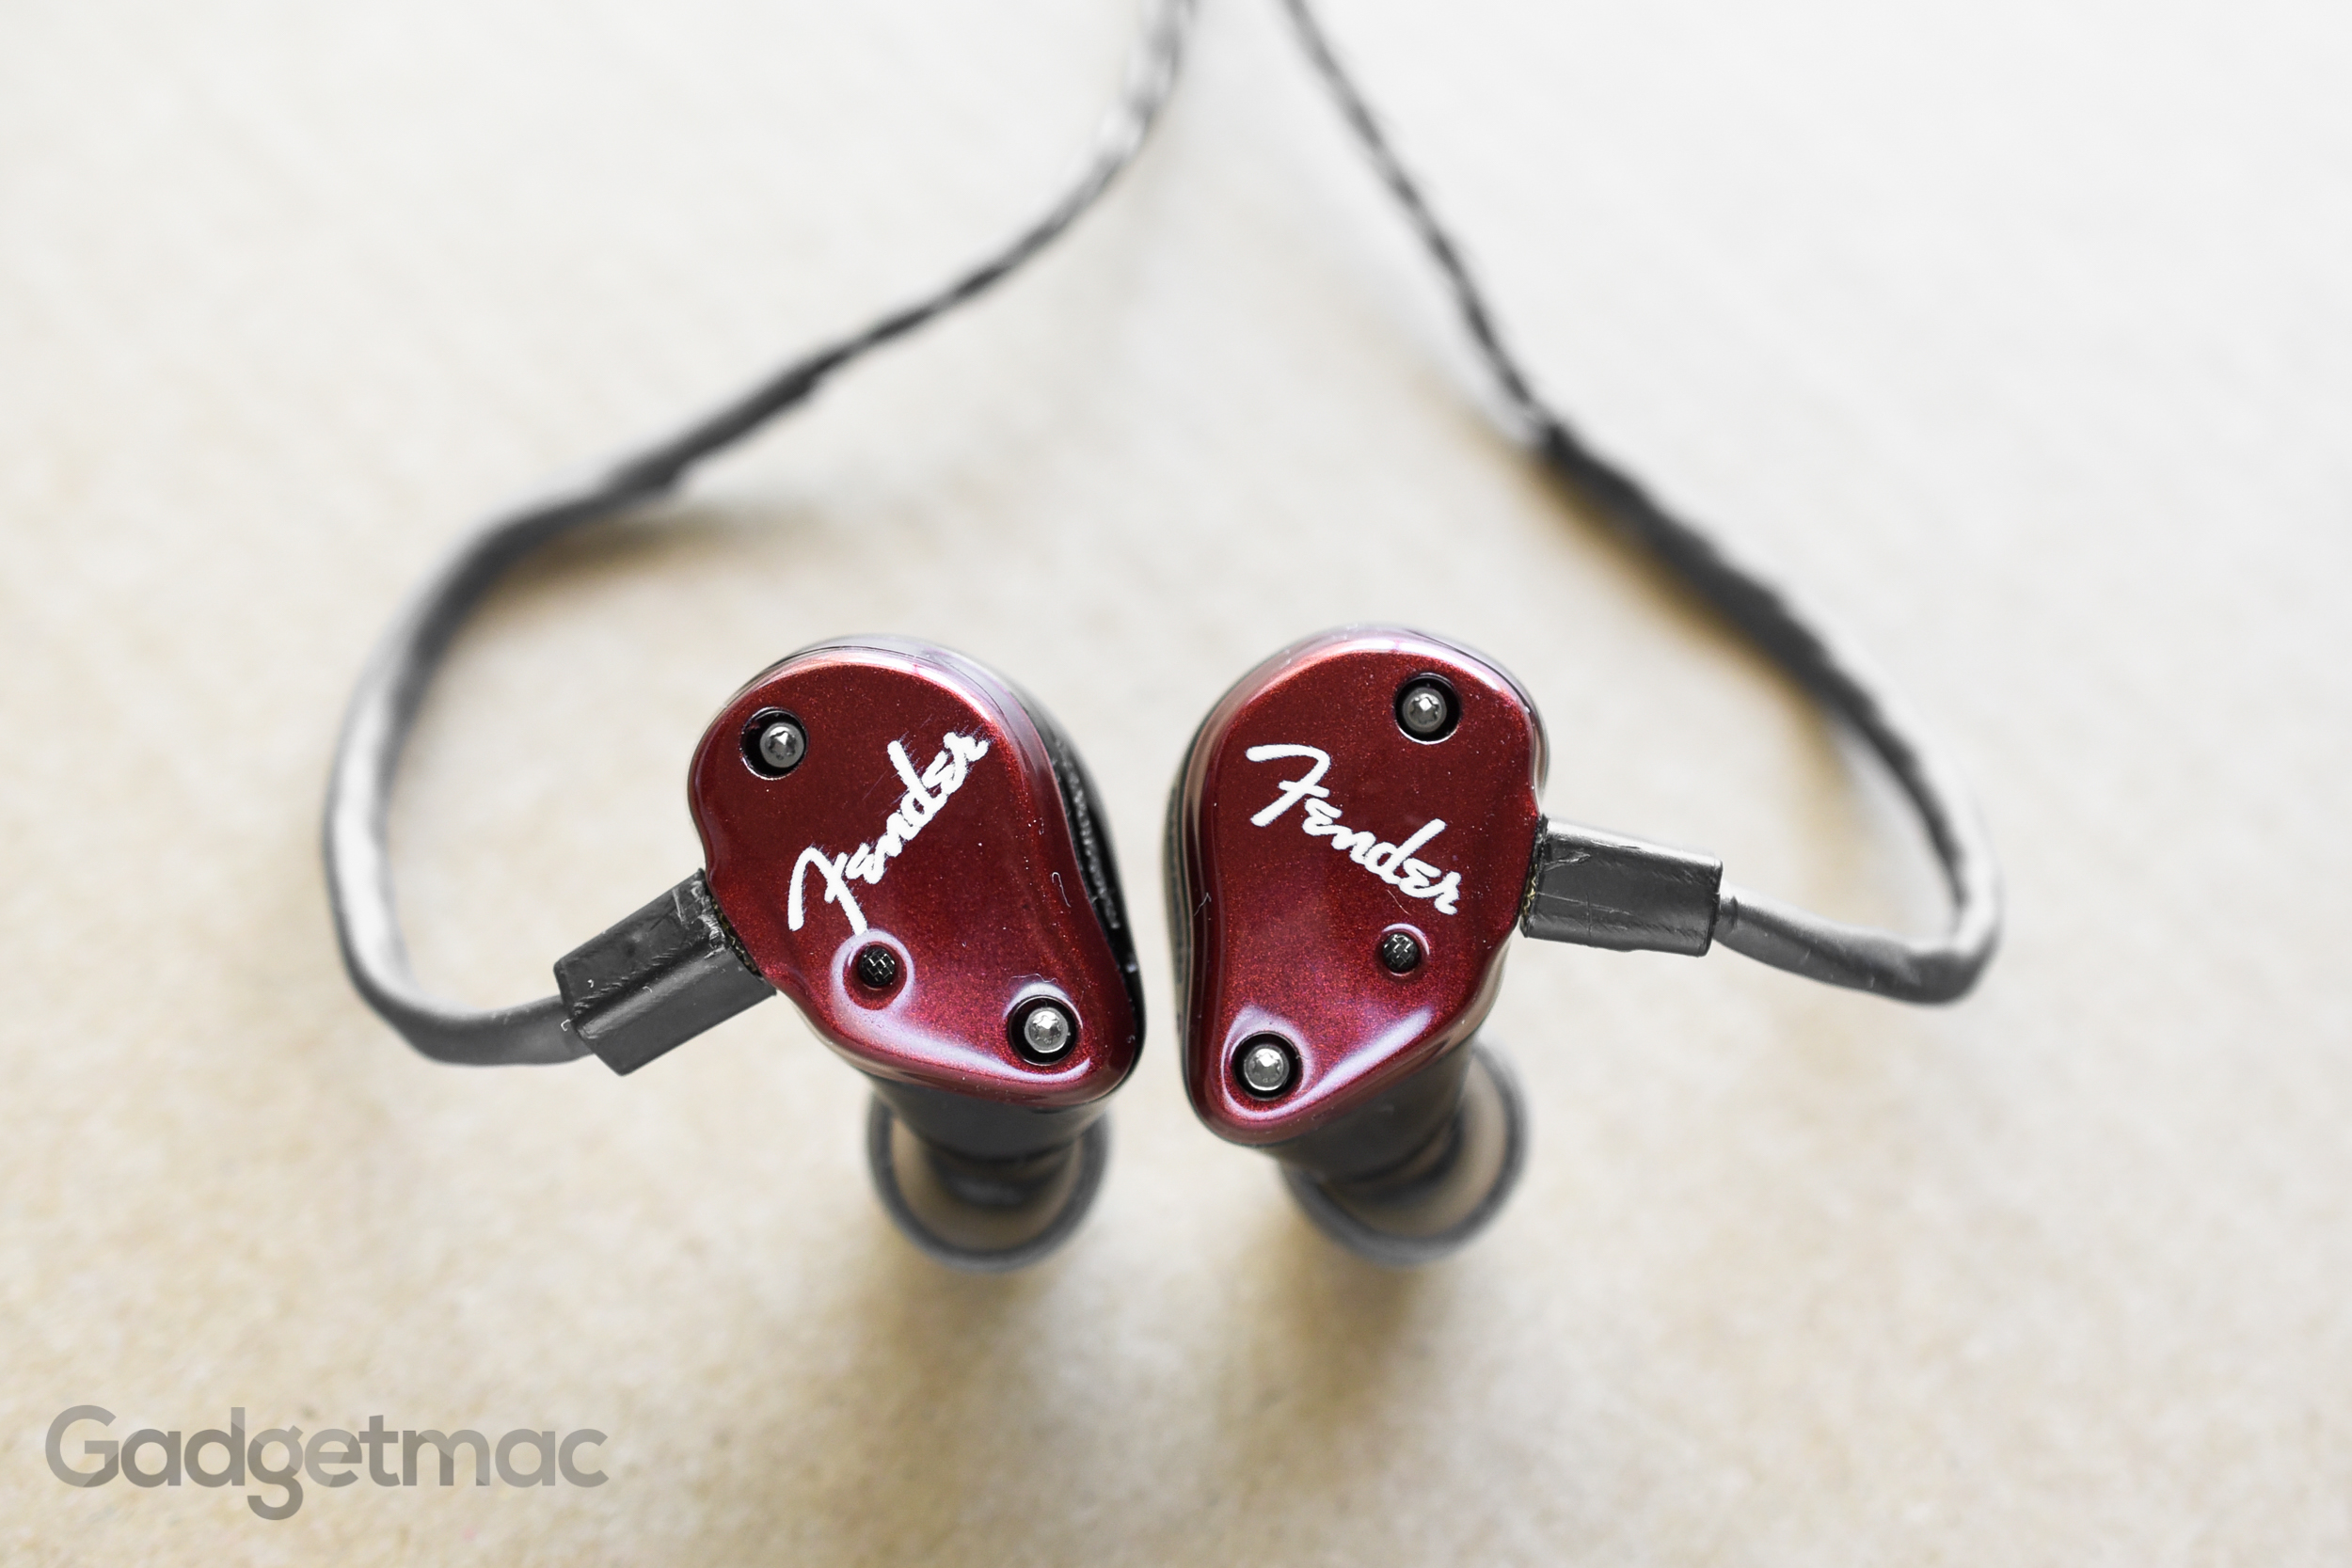 fender-fxa6-in-ear-monitors-1.jpg